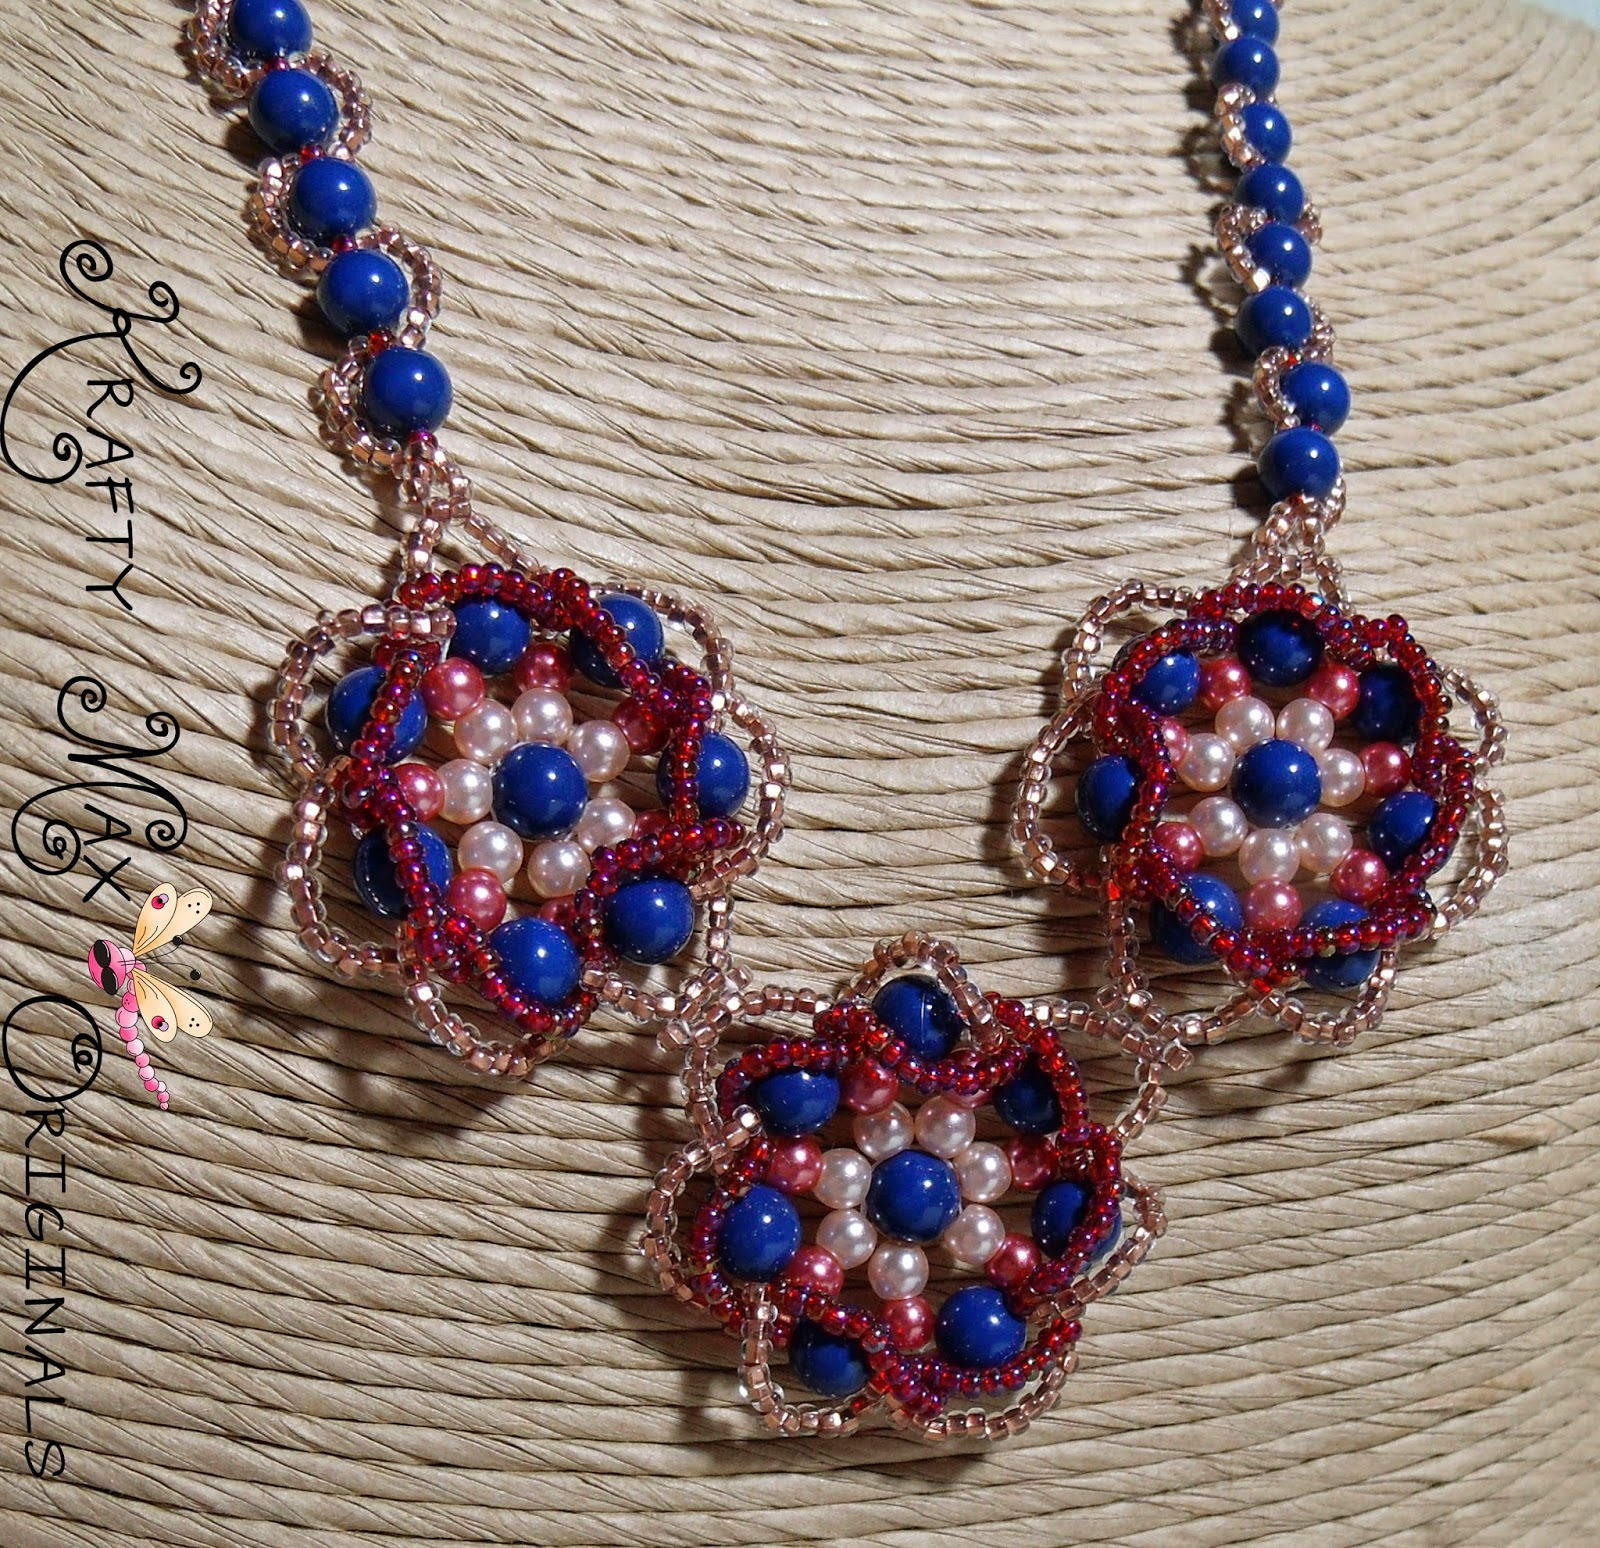 http://www.artfire.com/ext/shop/product_view/KraftyMax/9740780/blue_flowers_bursting_w_spring_swarovski_pearl_beadwoven_necklace_set/handmade/jewelry/necklaces/beadwoven